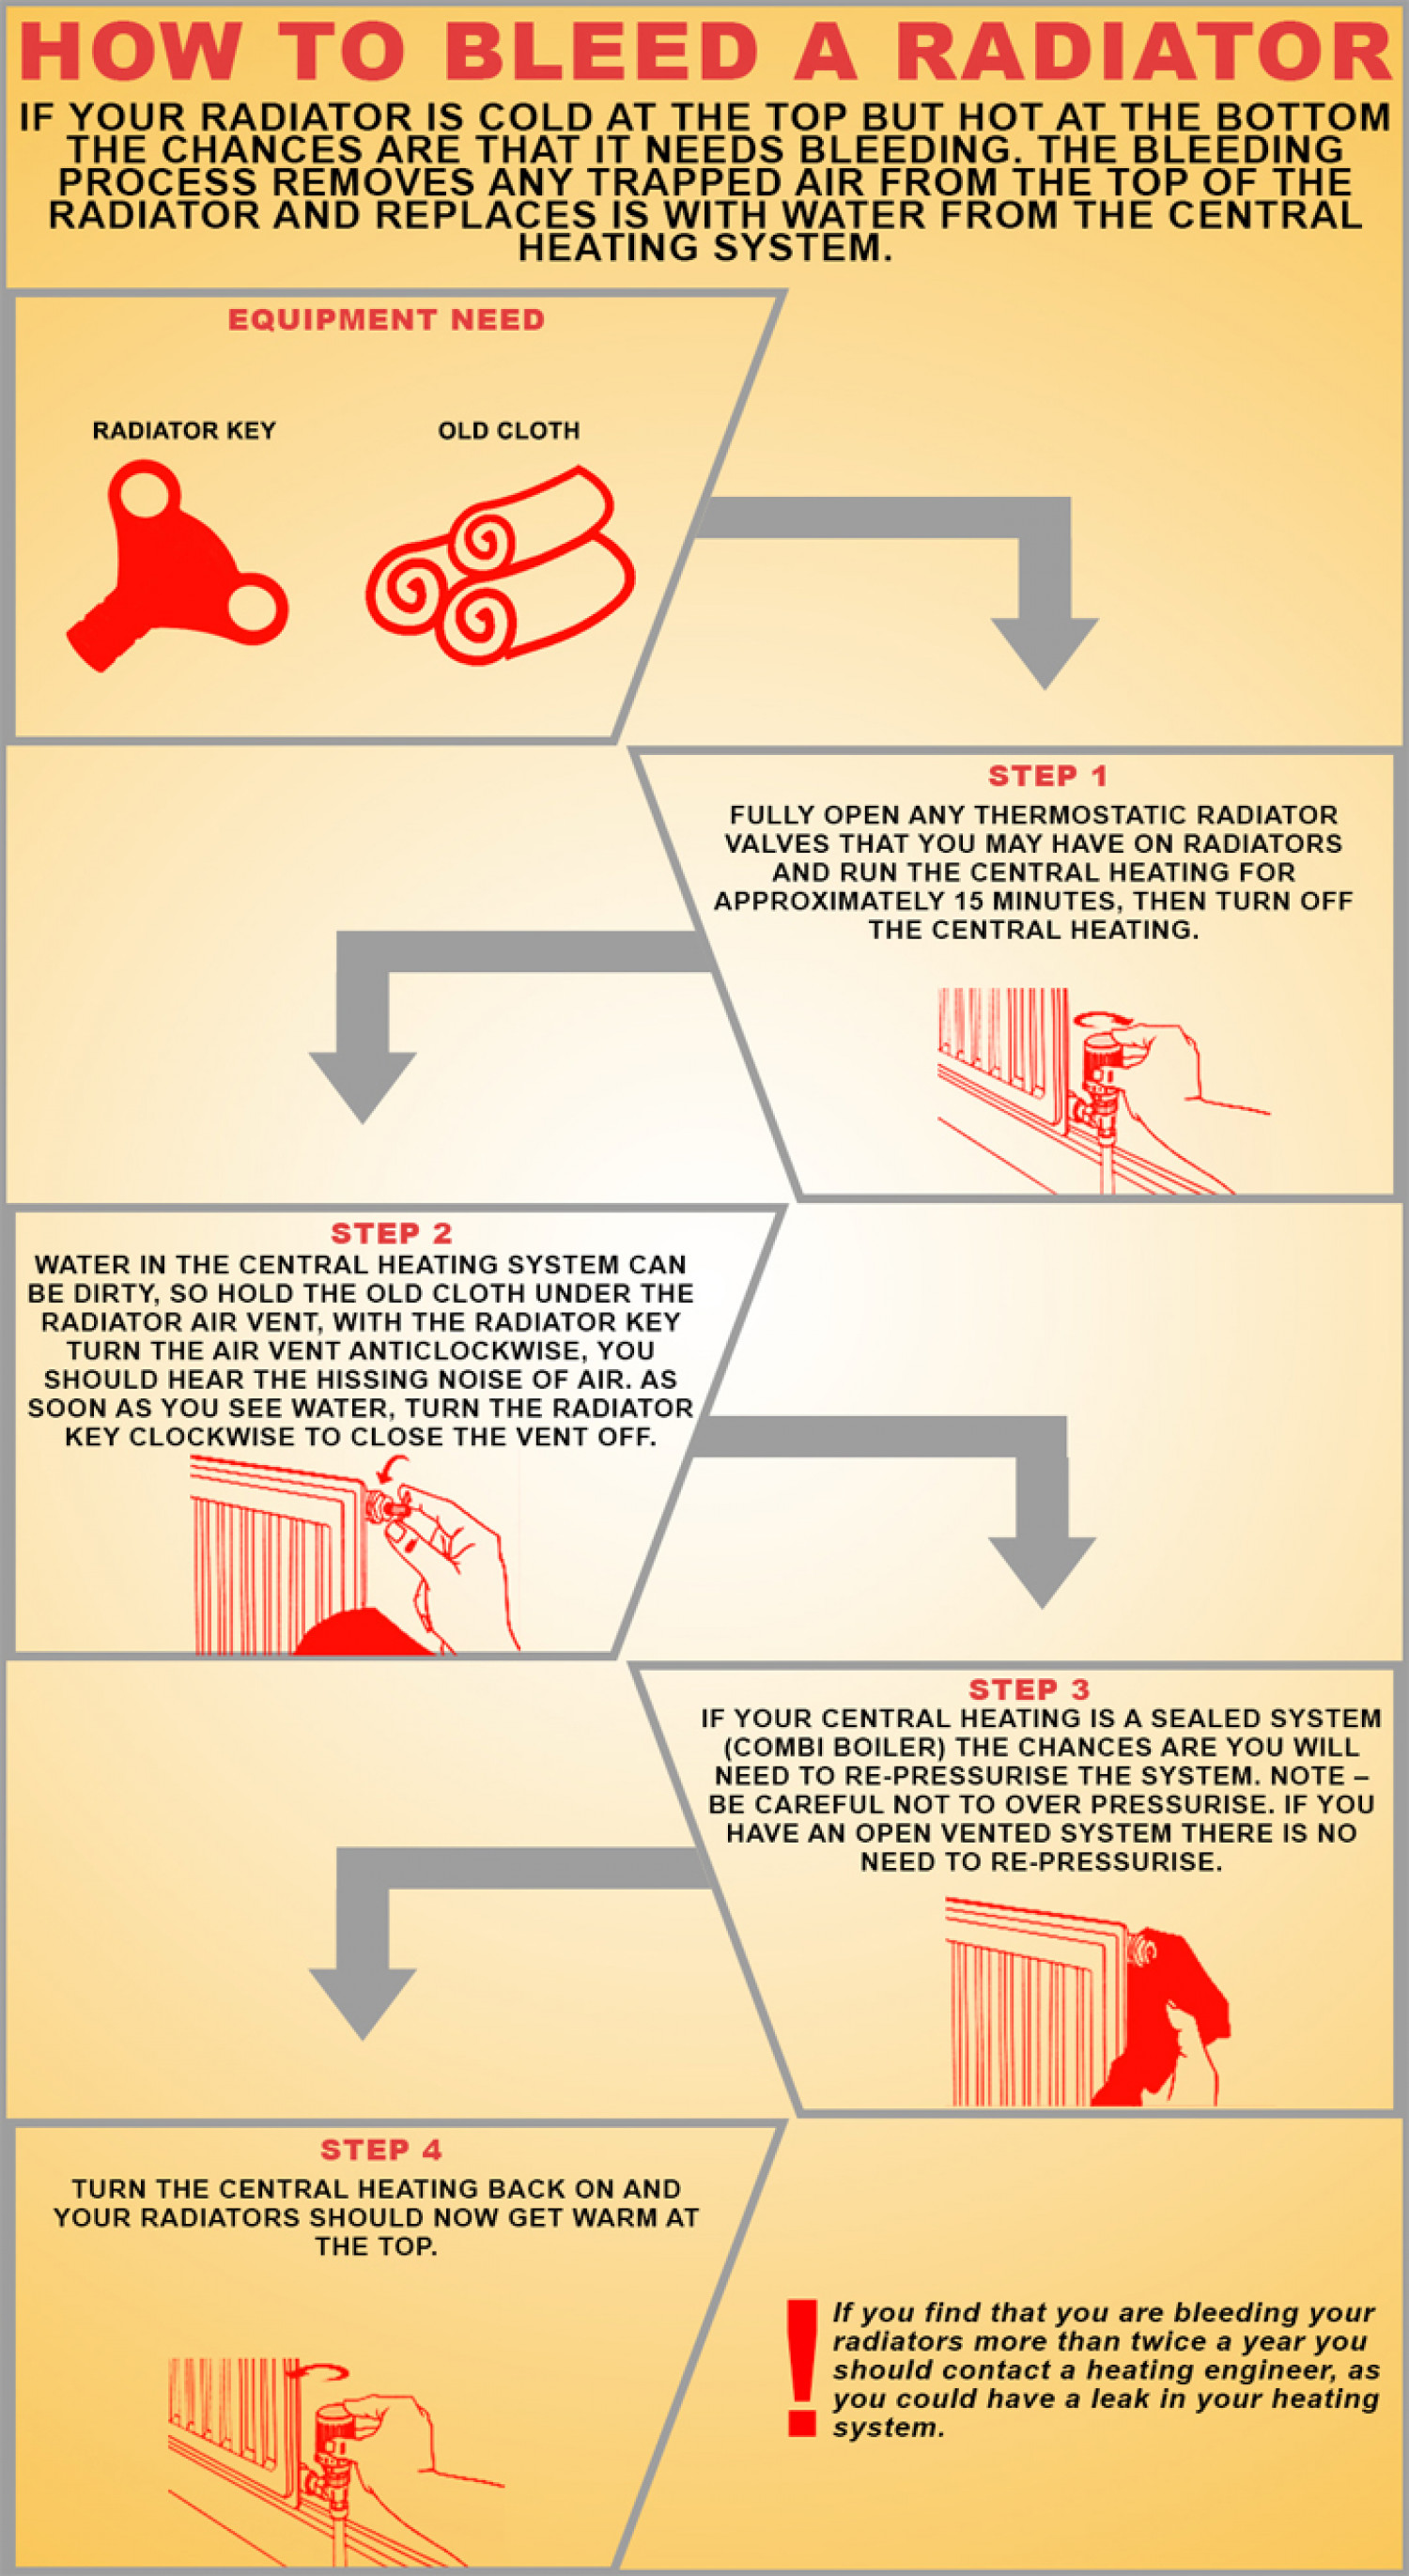 How to Bleed a Radiator | Visual.ly